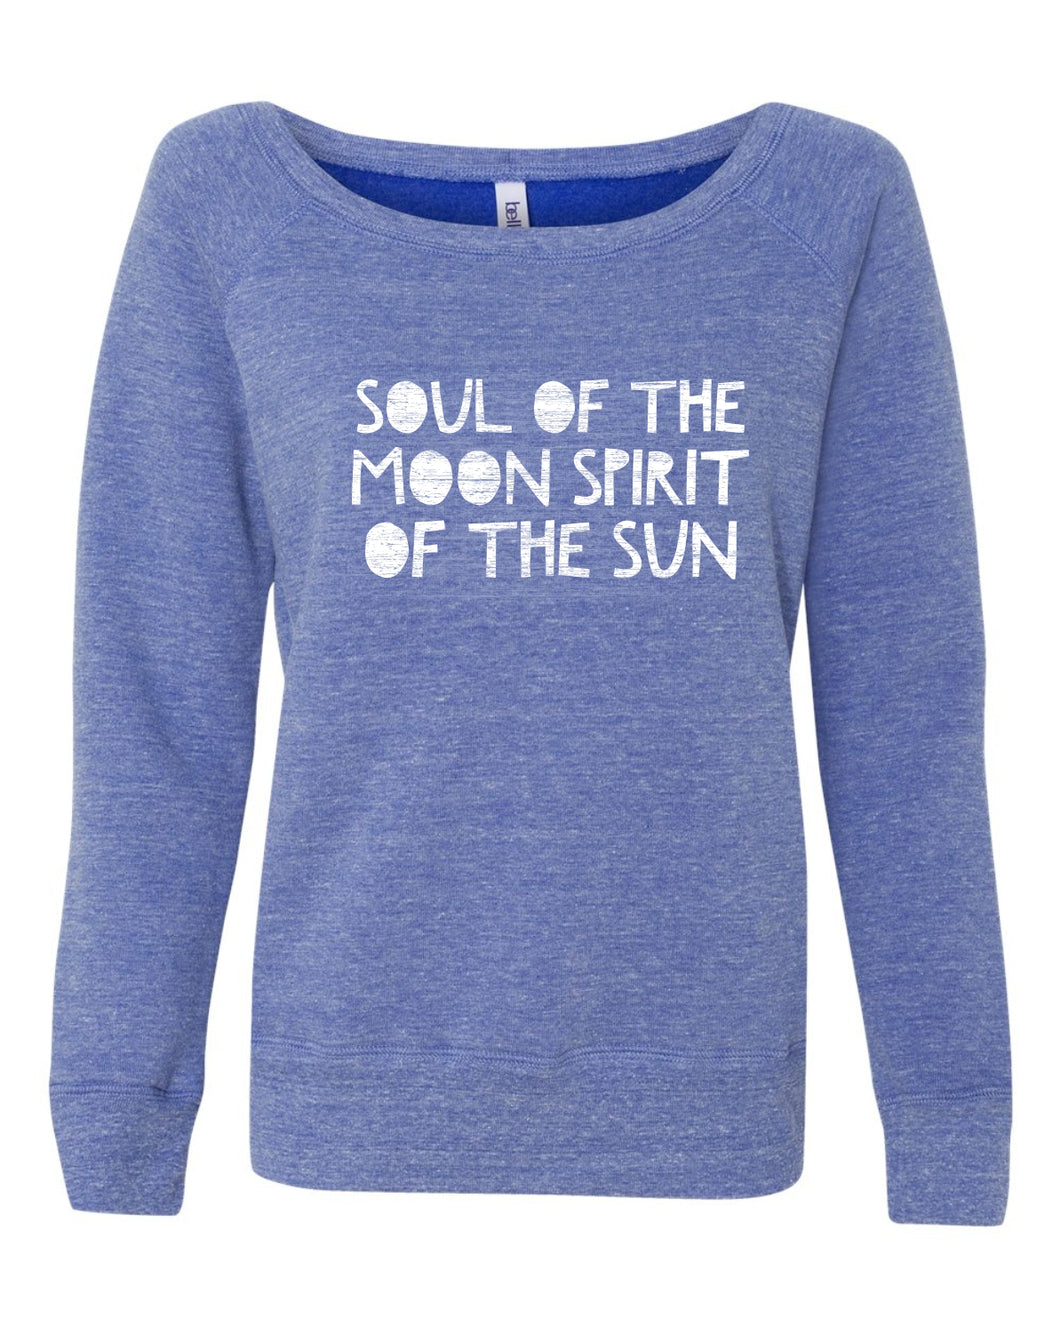 SOUL of the MOON, SPIRIT of the SUN Sweatshirt